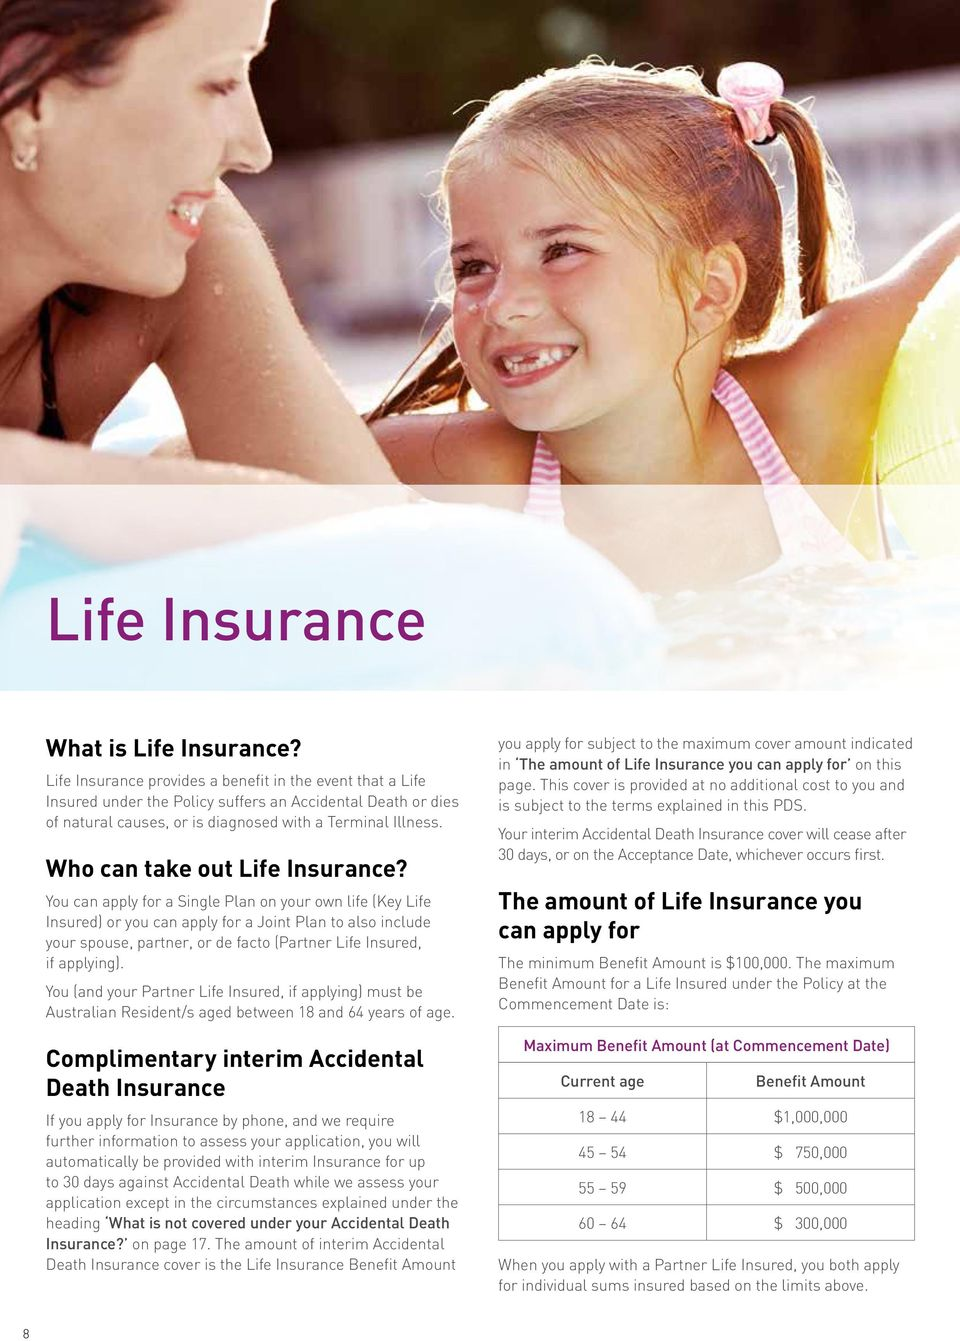 Who can take out Life Insurance?